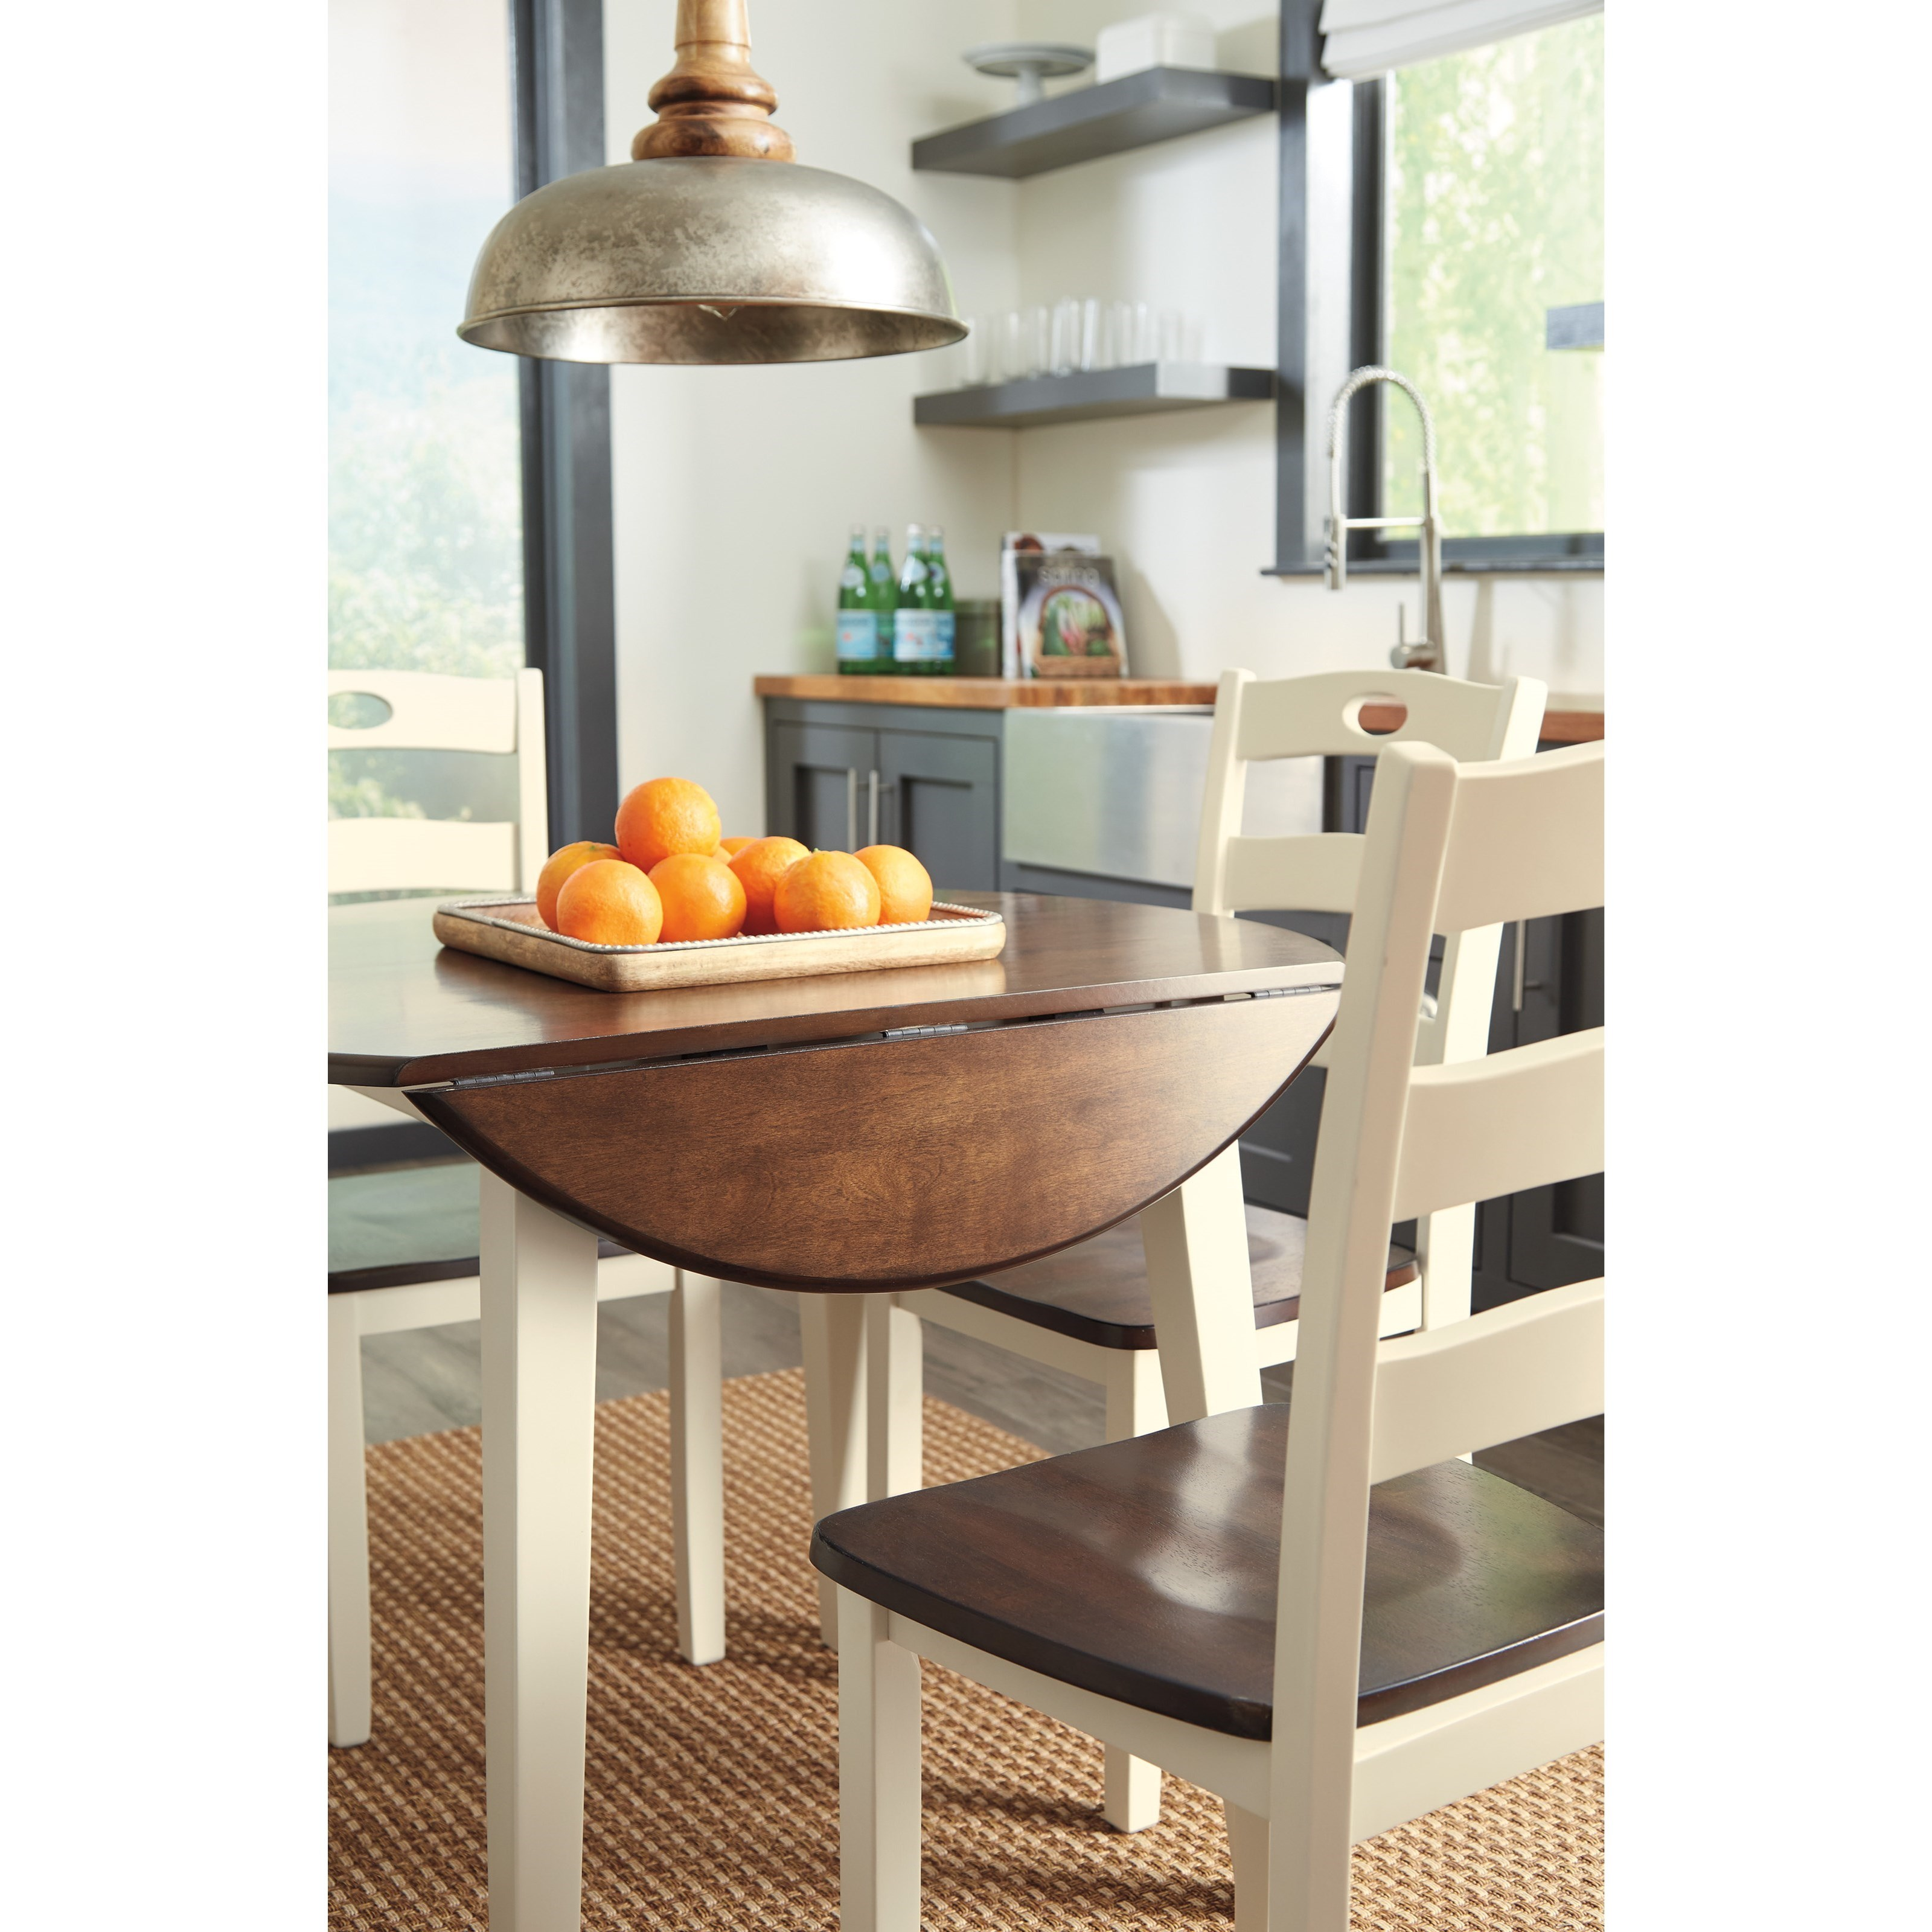 Round Kitchen Table With Leaf: Two-Tone Finish Round Dining Room Drop Leaf Table By